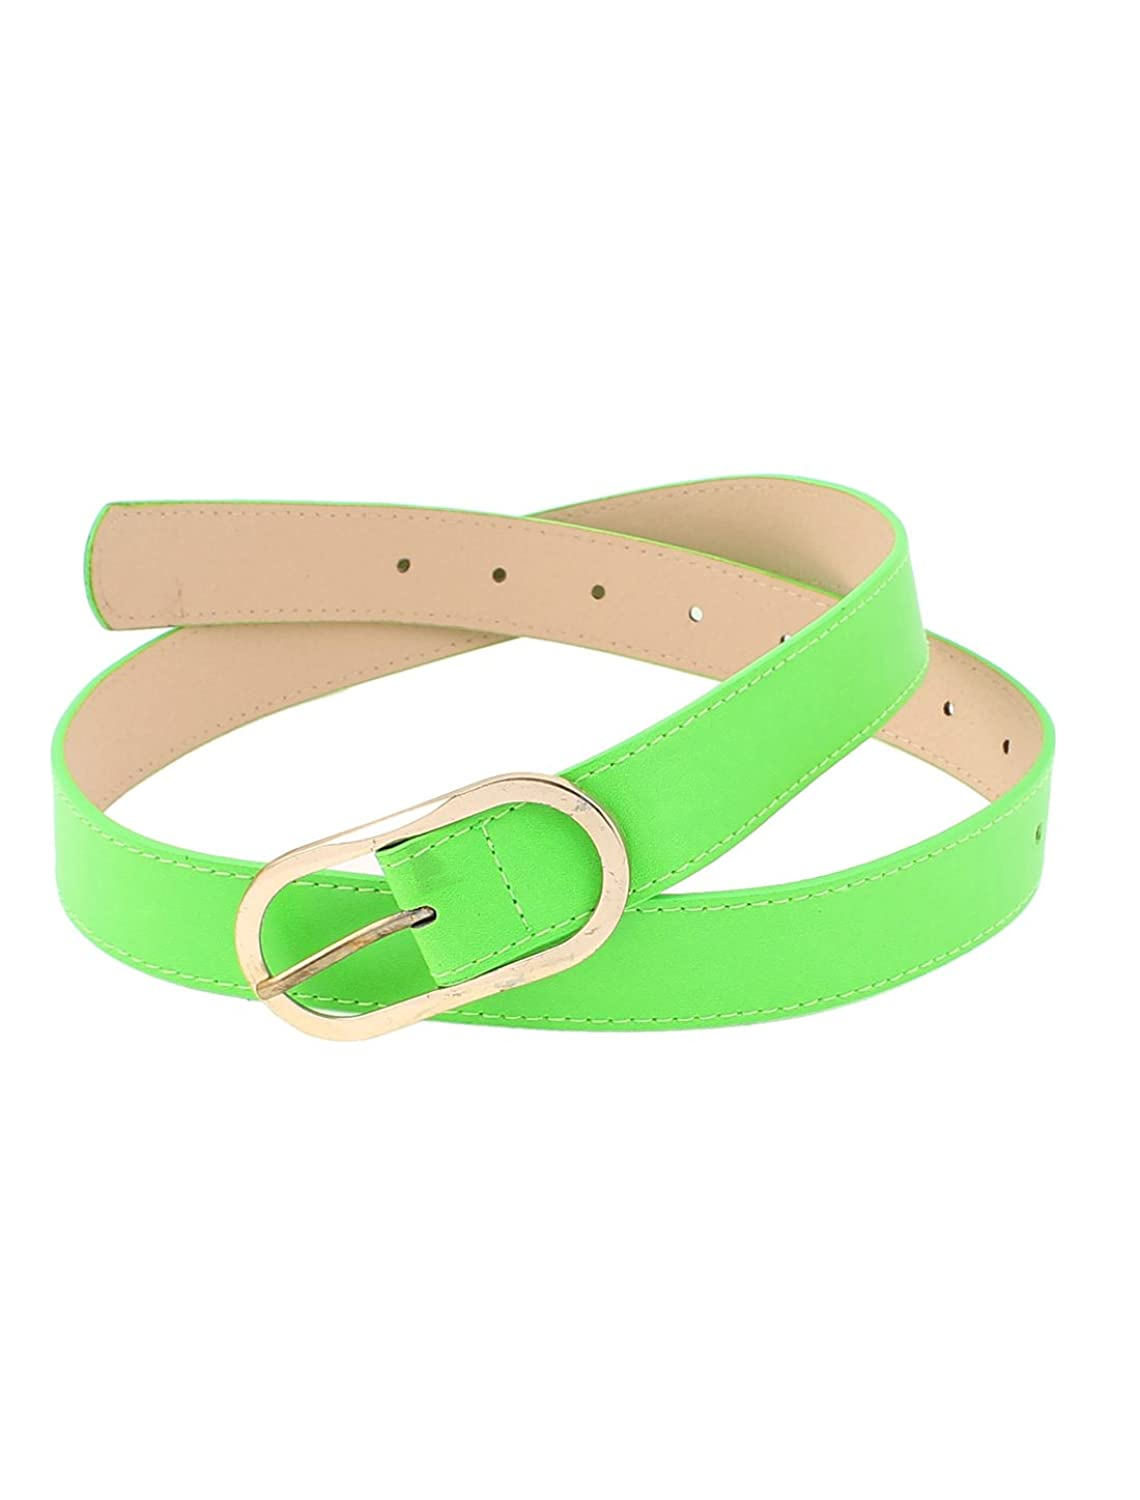 uxcell Woman Faux Leather Coated Metal Single Prong Buckle Waist Belt Green